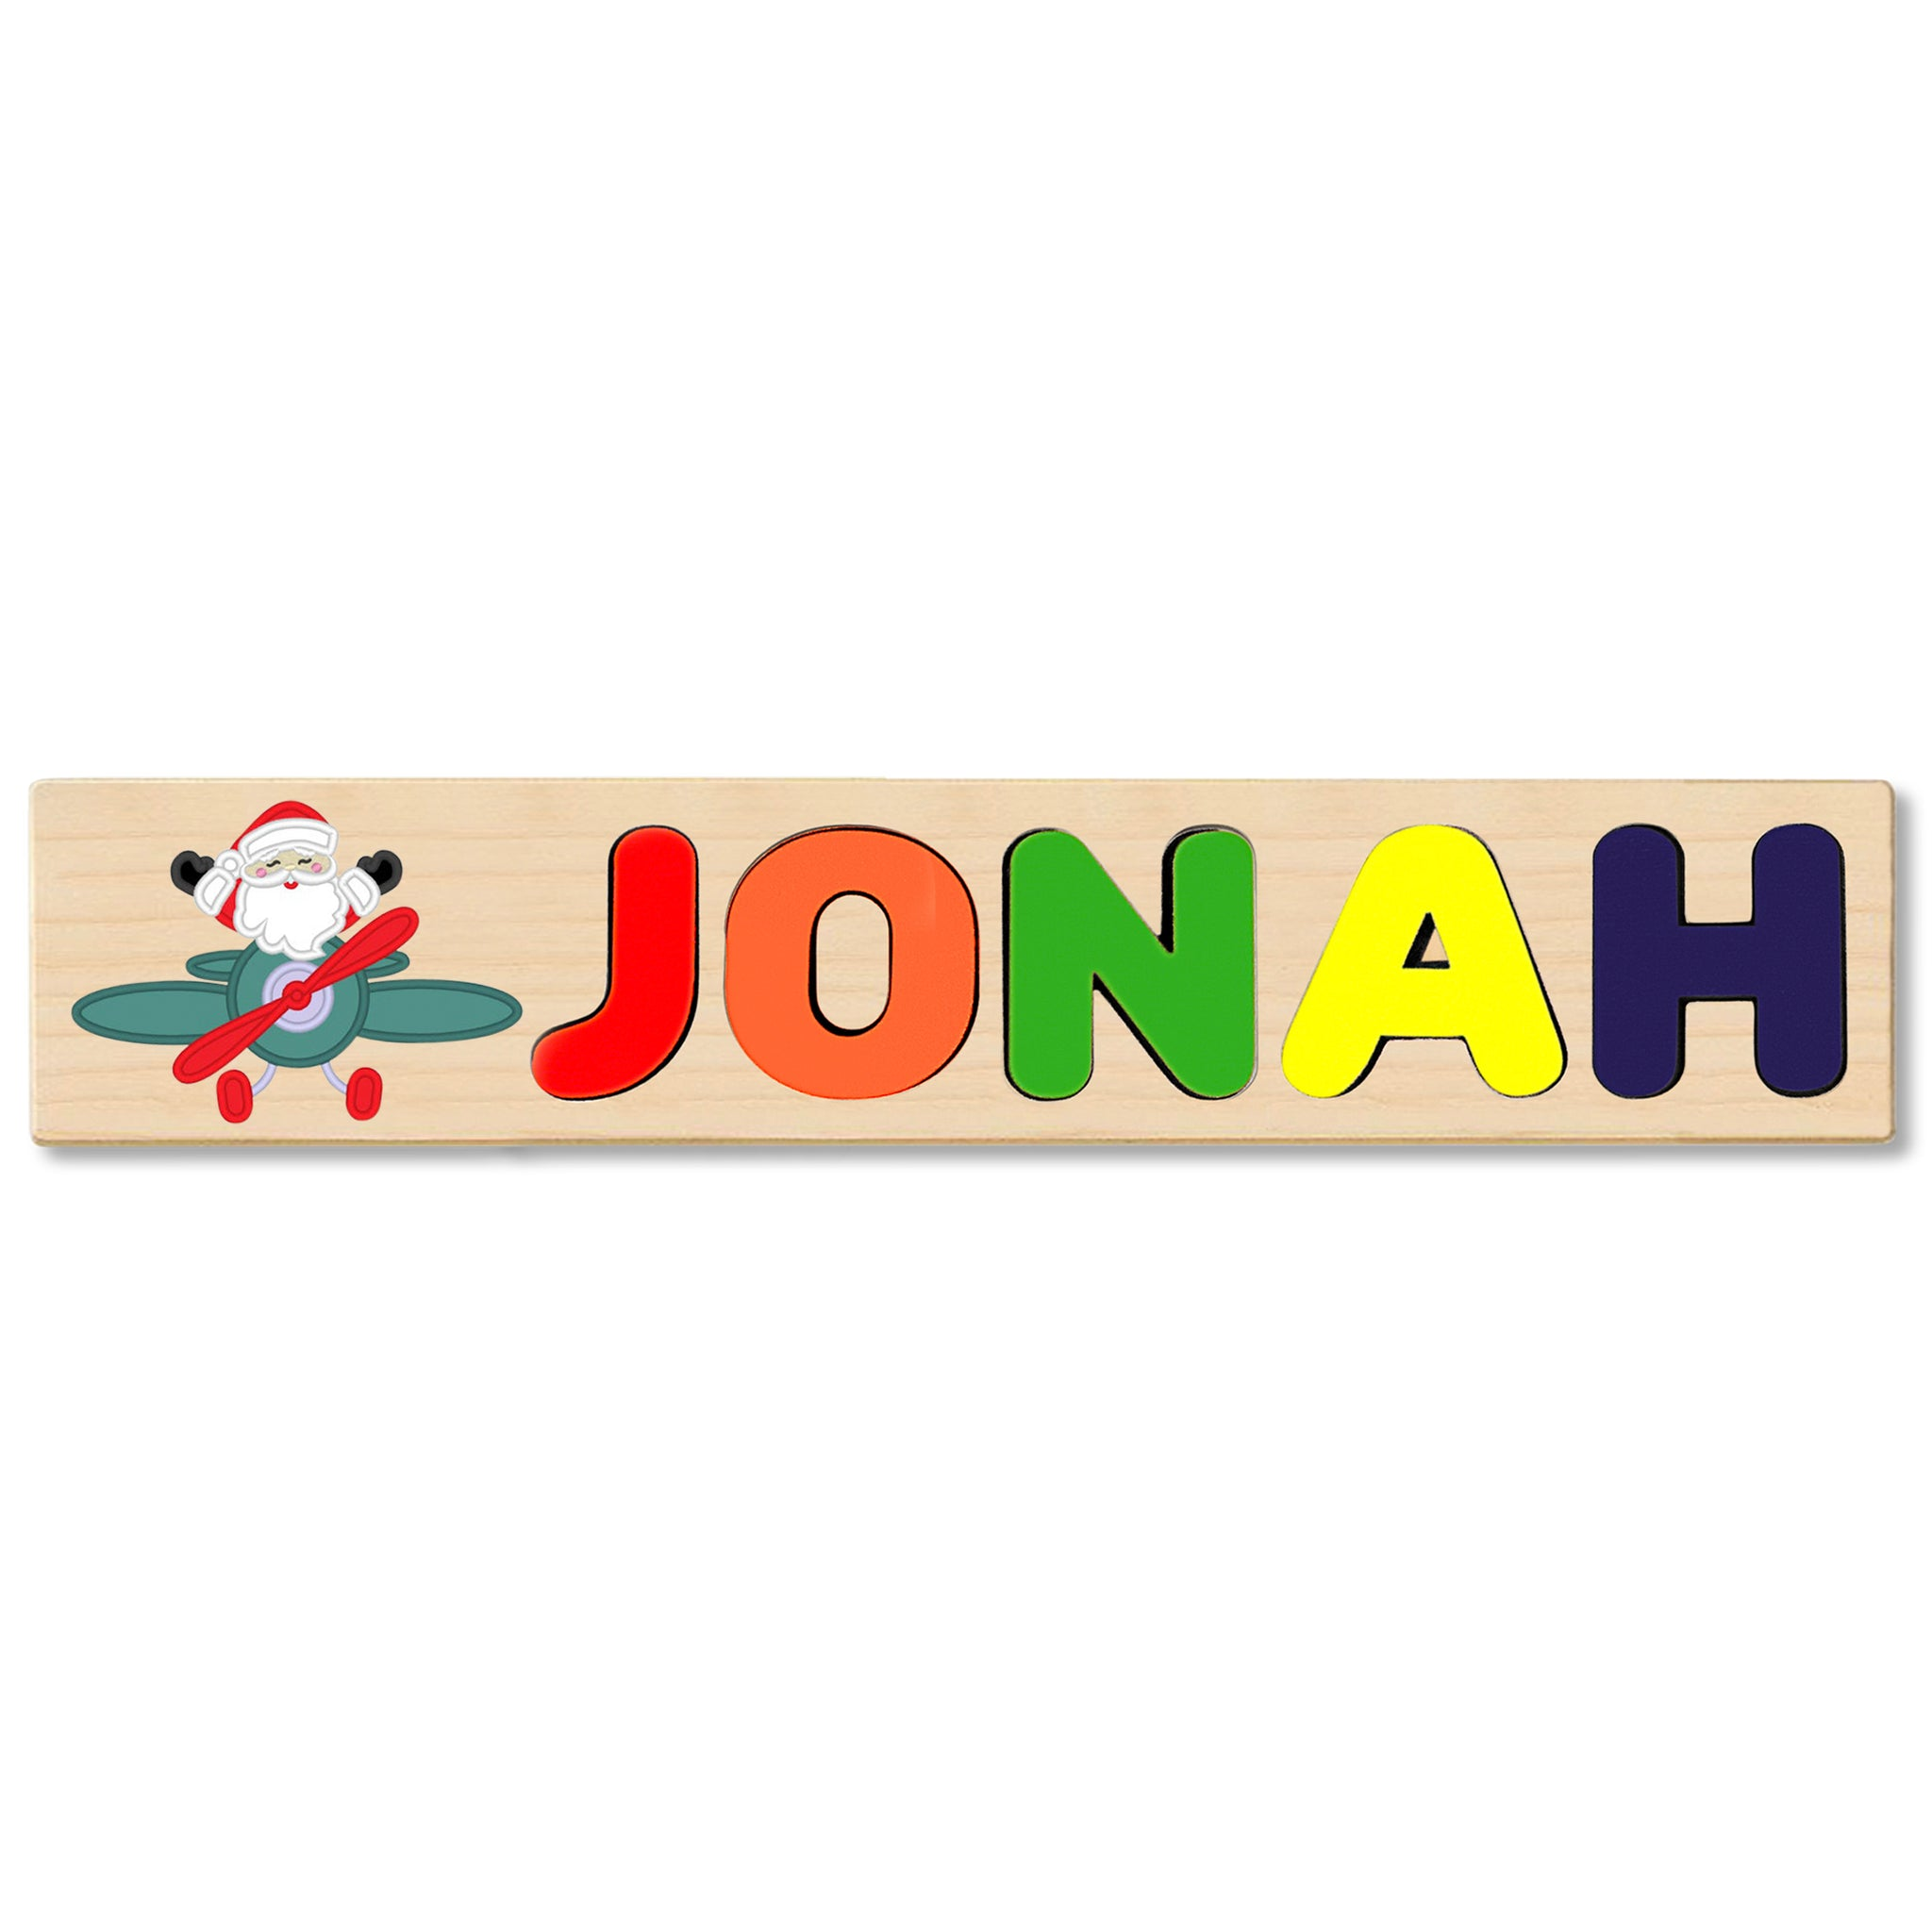 Wooden Name Puzzle Personalized Puzzle Choose Up to 12 Letters. Santa Claus Flying With Christmas Plane Theme